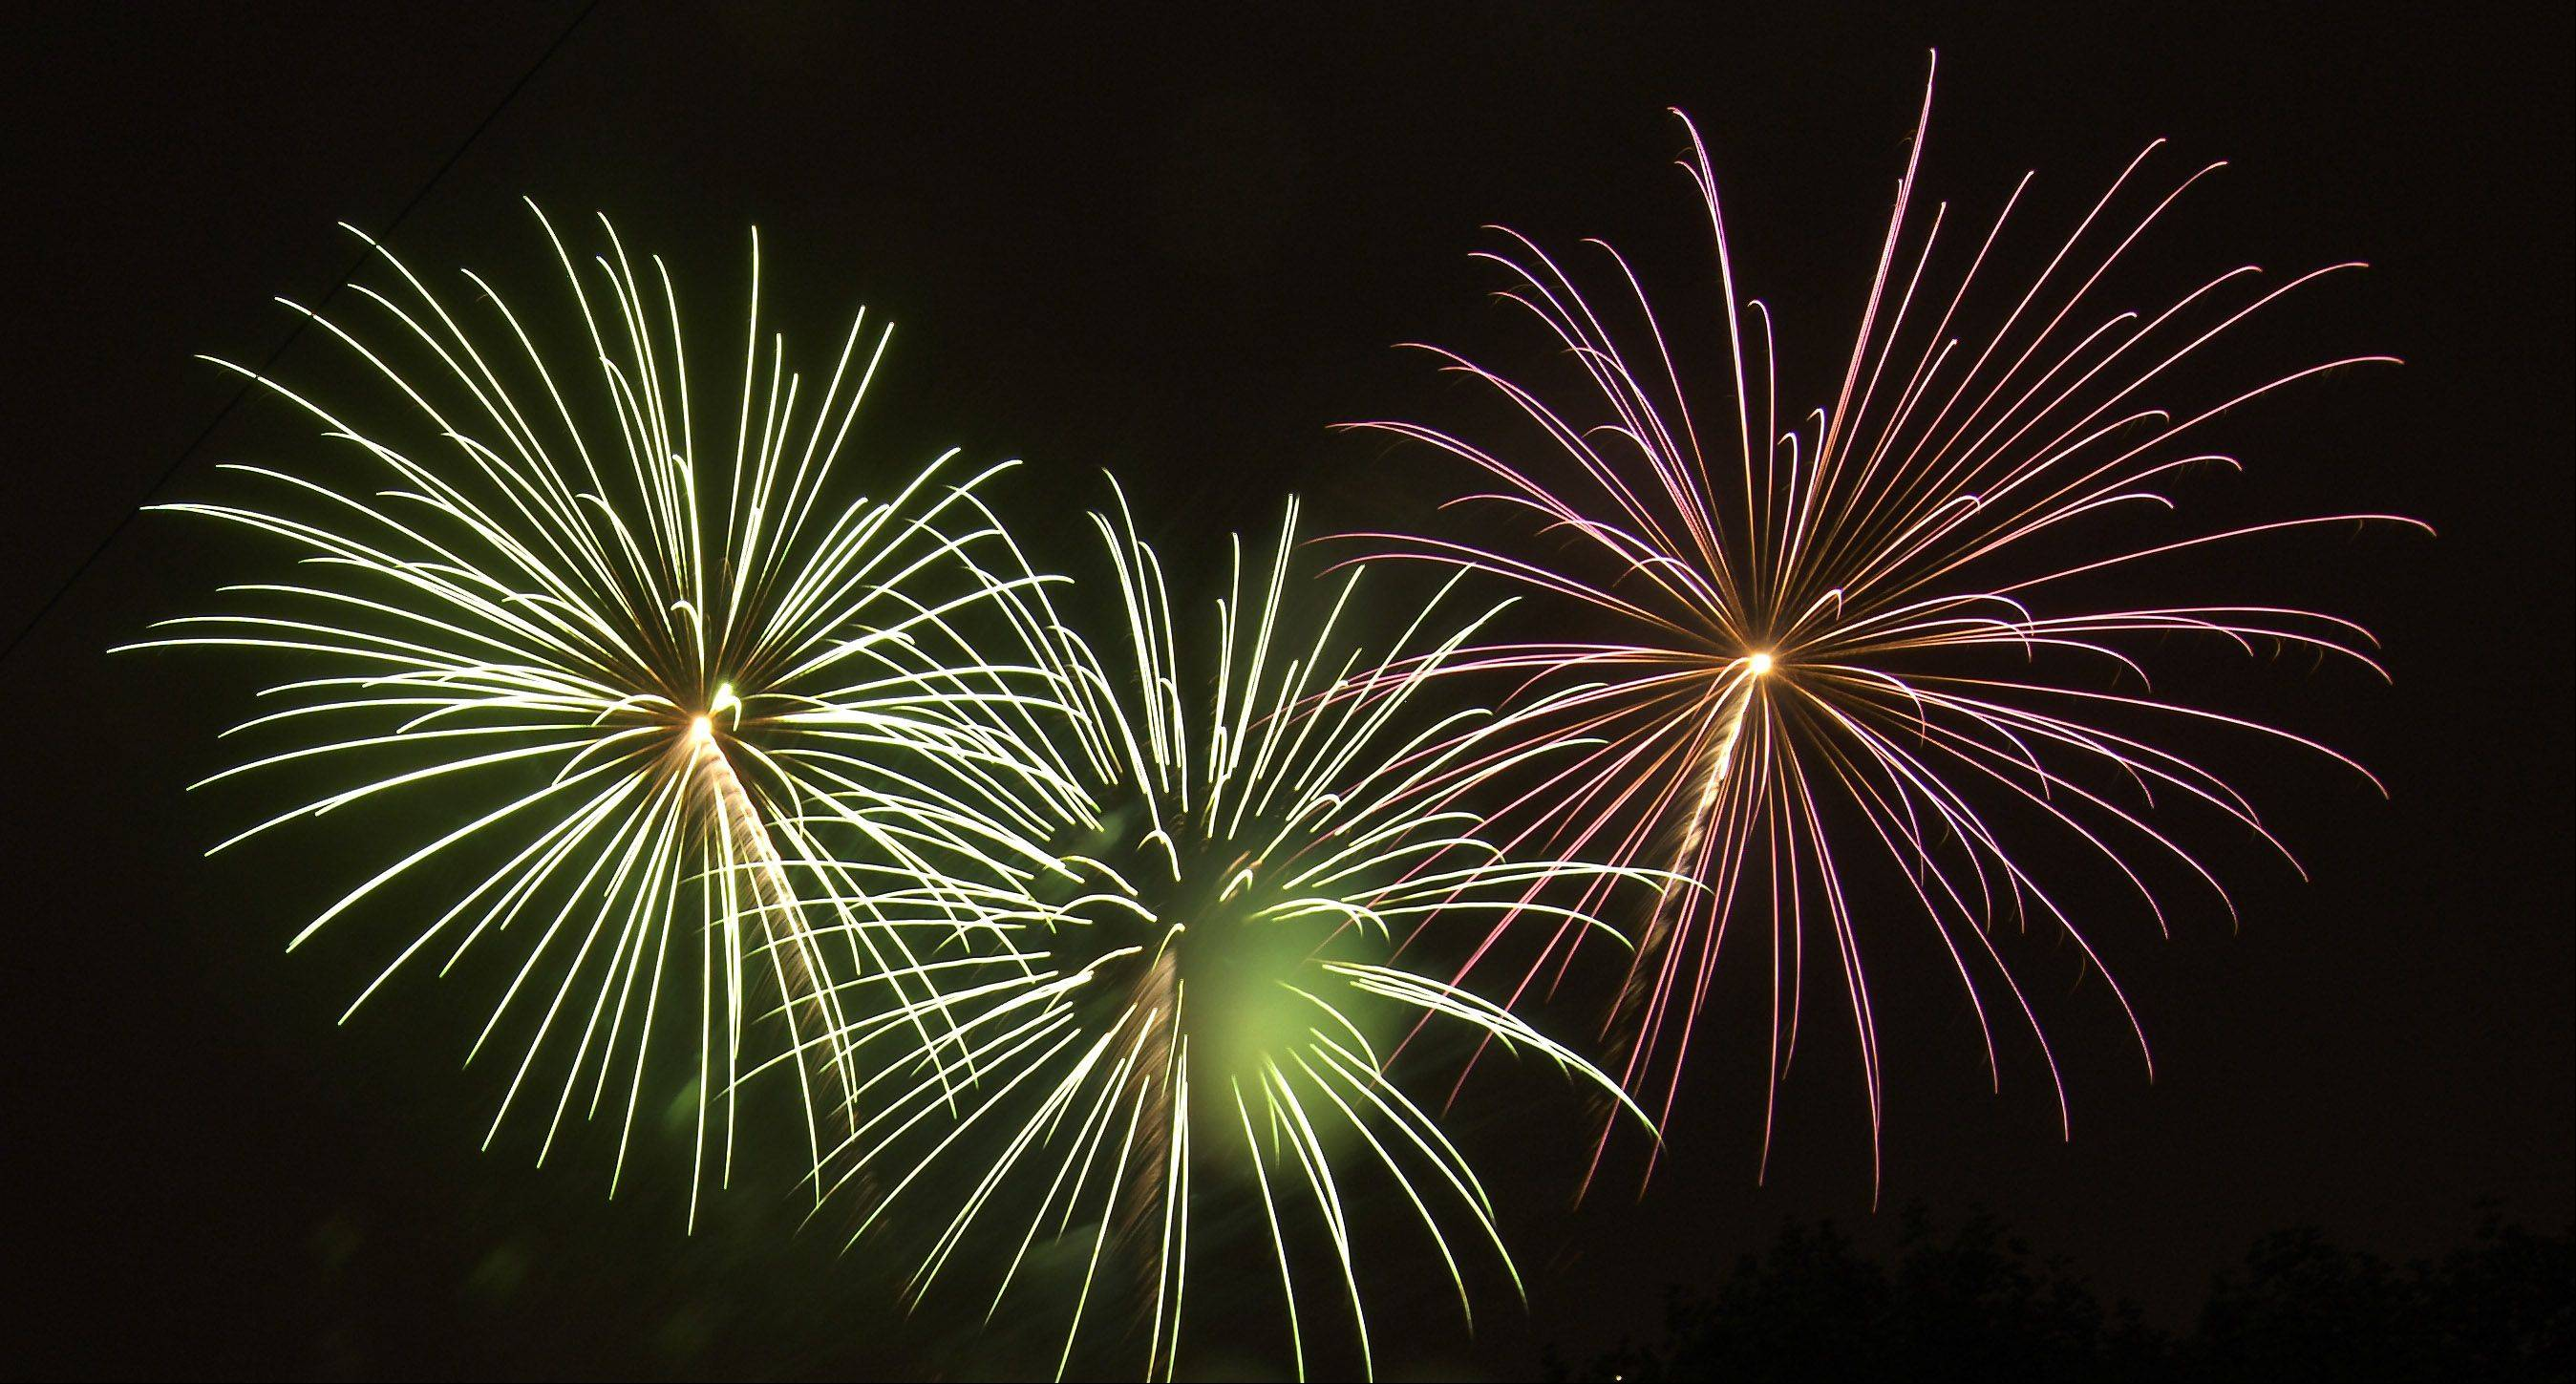 Your support is needed to continue the Batavia fireworks show. The Batavia Access Fireworks Committee needs to raise $50,000 by May 1.